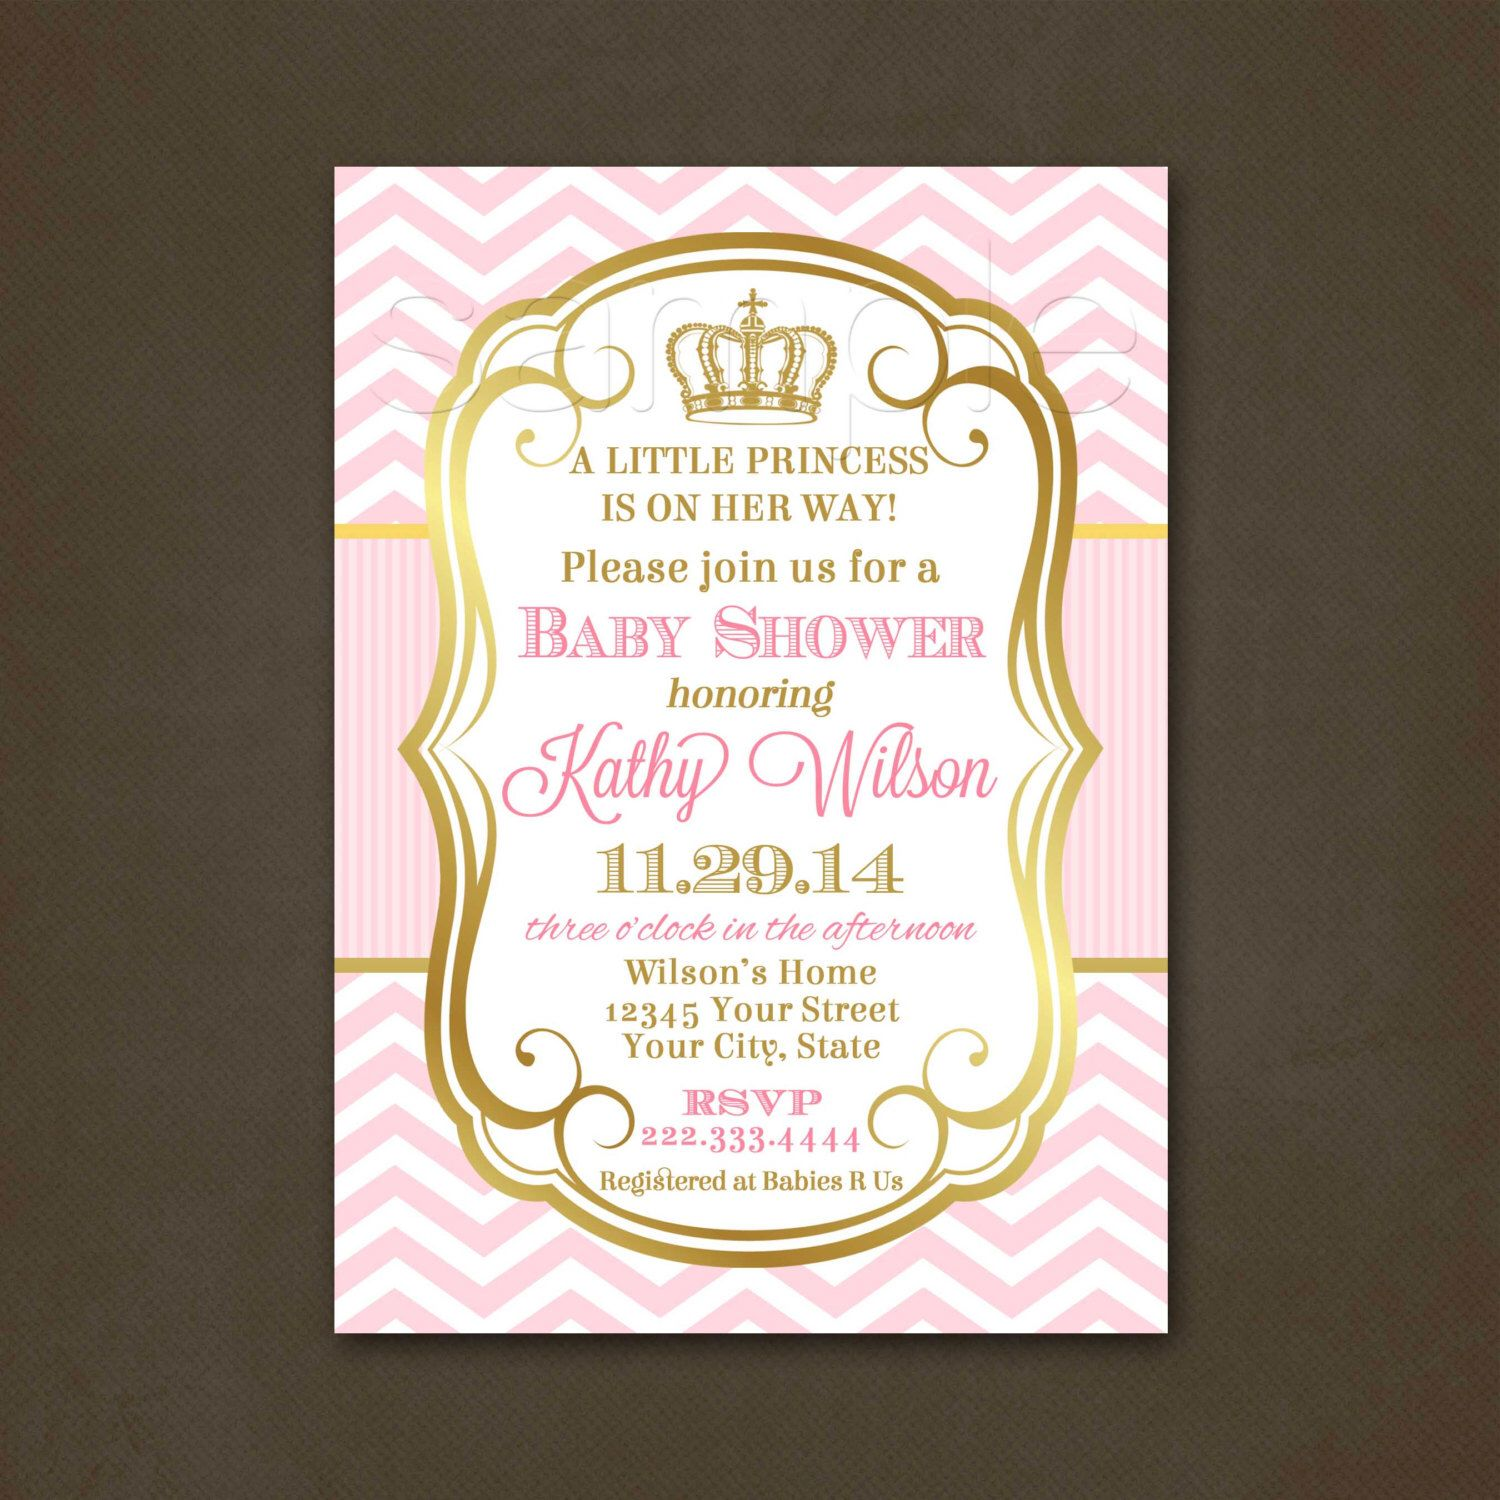 Princess Baby Shower Invitation, Baby Shower Invitation For A Girl, Pink  Chevron, Pink And Gold, Elegant, Crown Invitation, Printable File